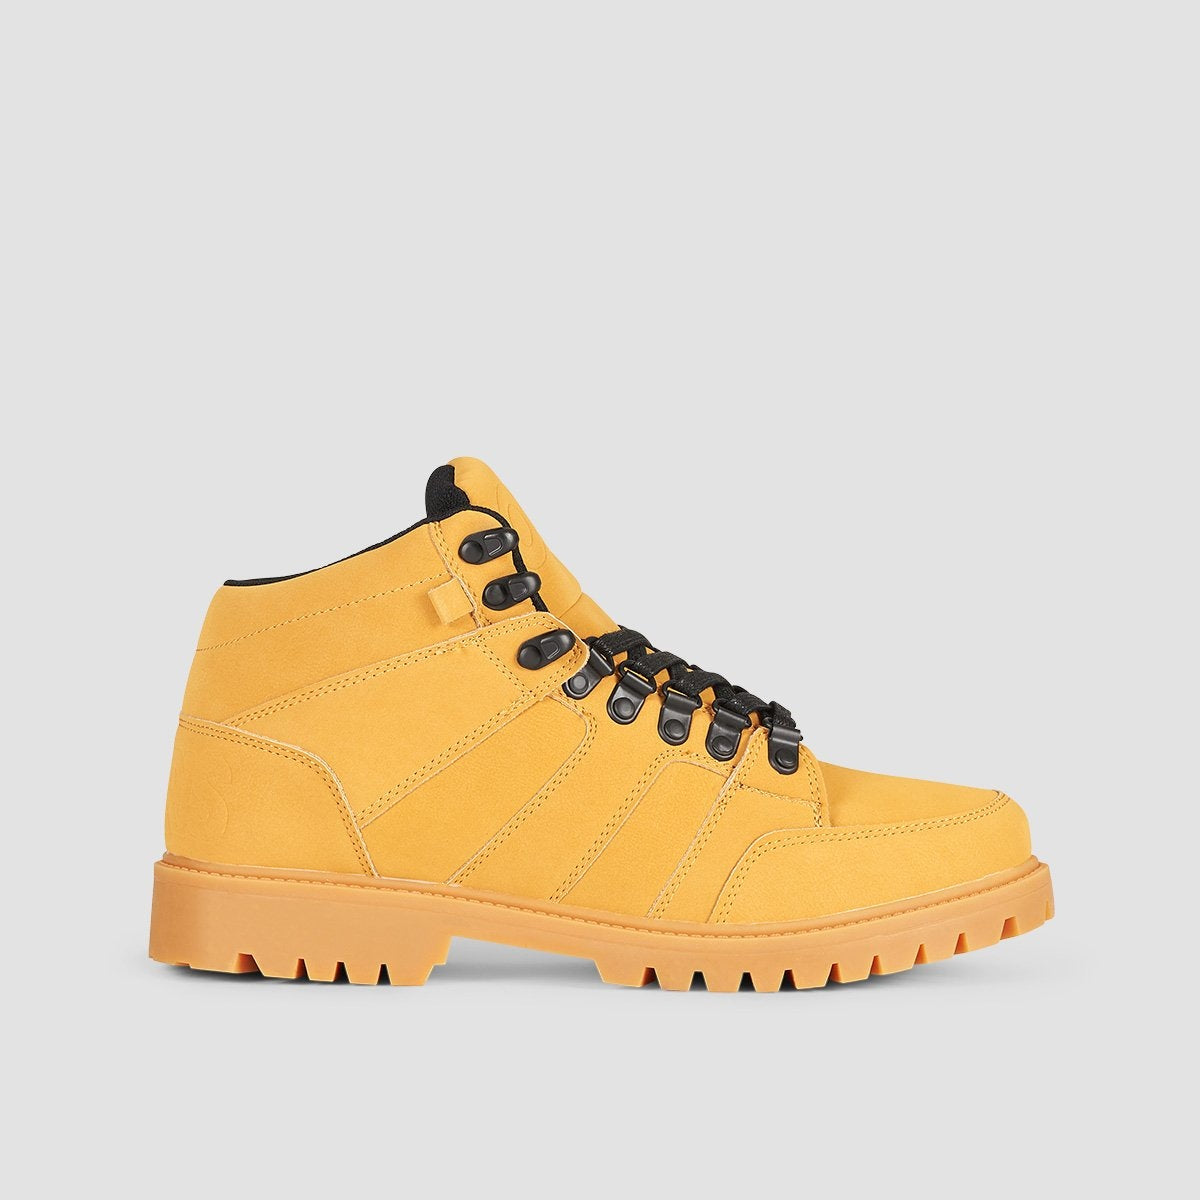 Osiris Convoy Boot Tan/Gum - Footwear